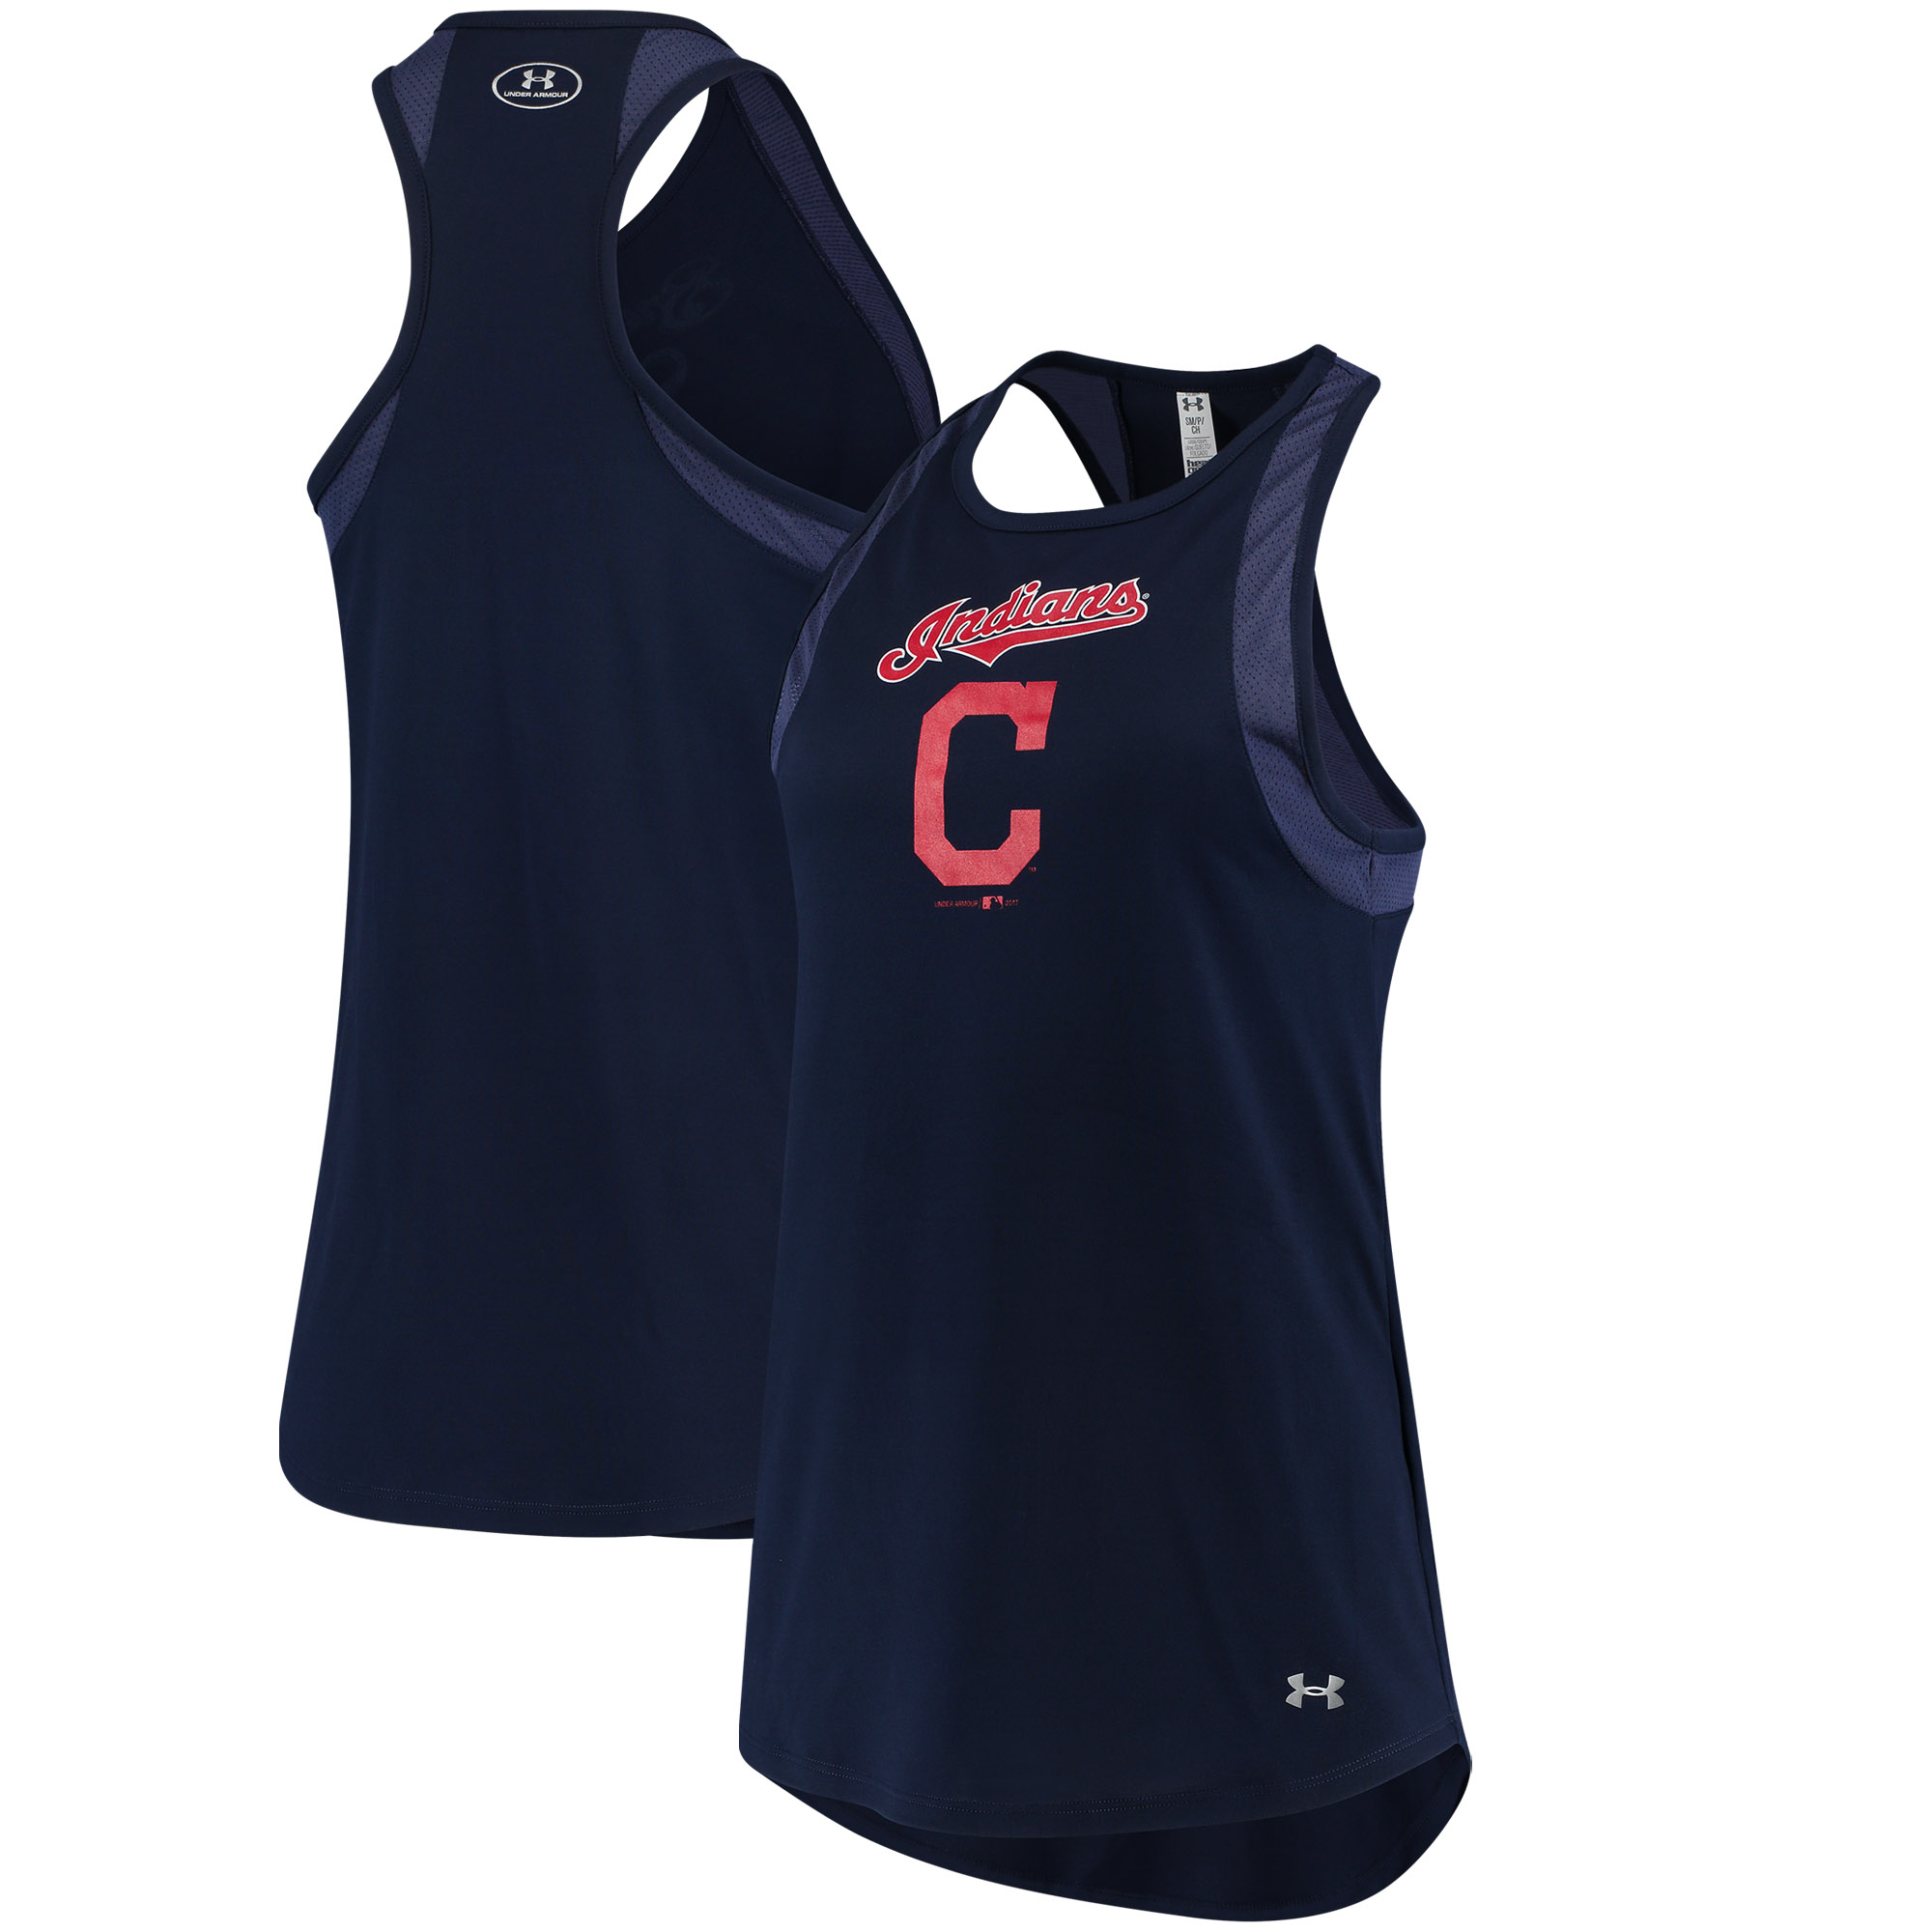 Cleveland Indians Under Armour Women's Pointelle Mesh Performance Tank Top Navy by Gear For Sports/Under Armour